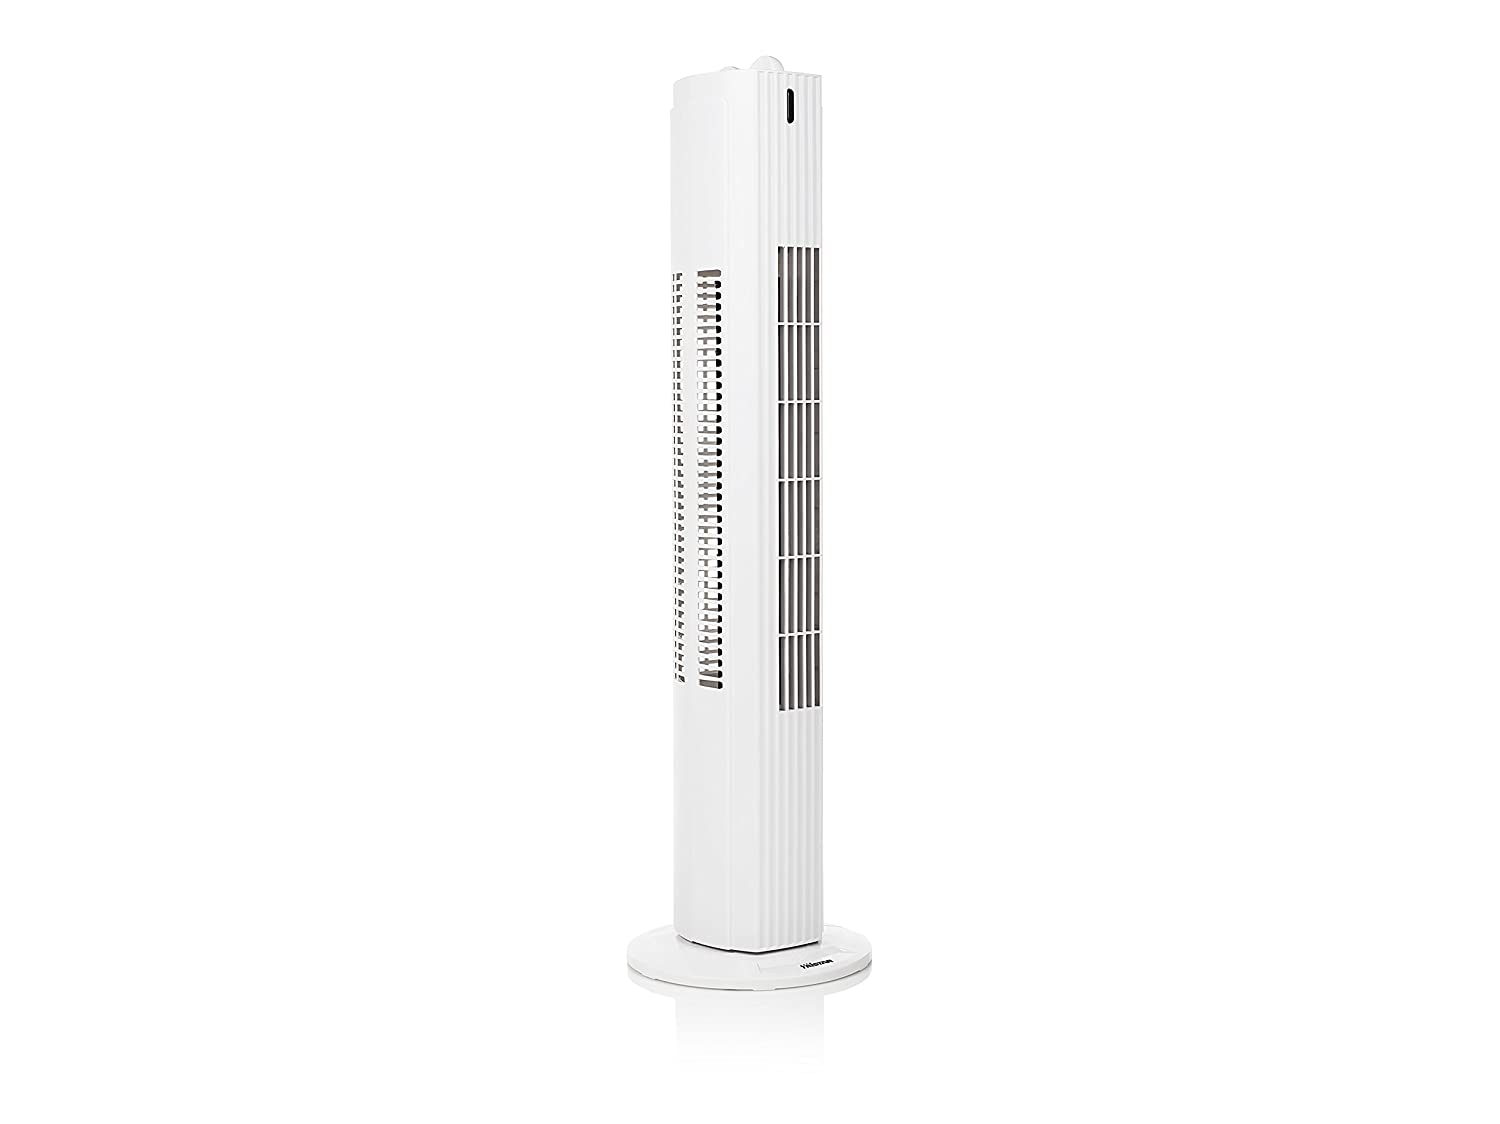 Tower Fan Tristar VE-5985 – 78 cm – Timer Function [Energy Class A]